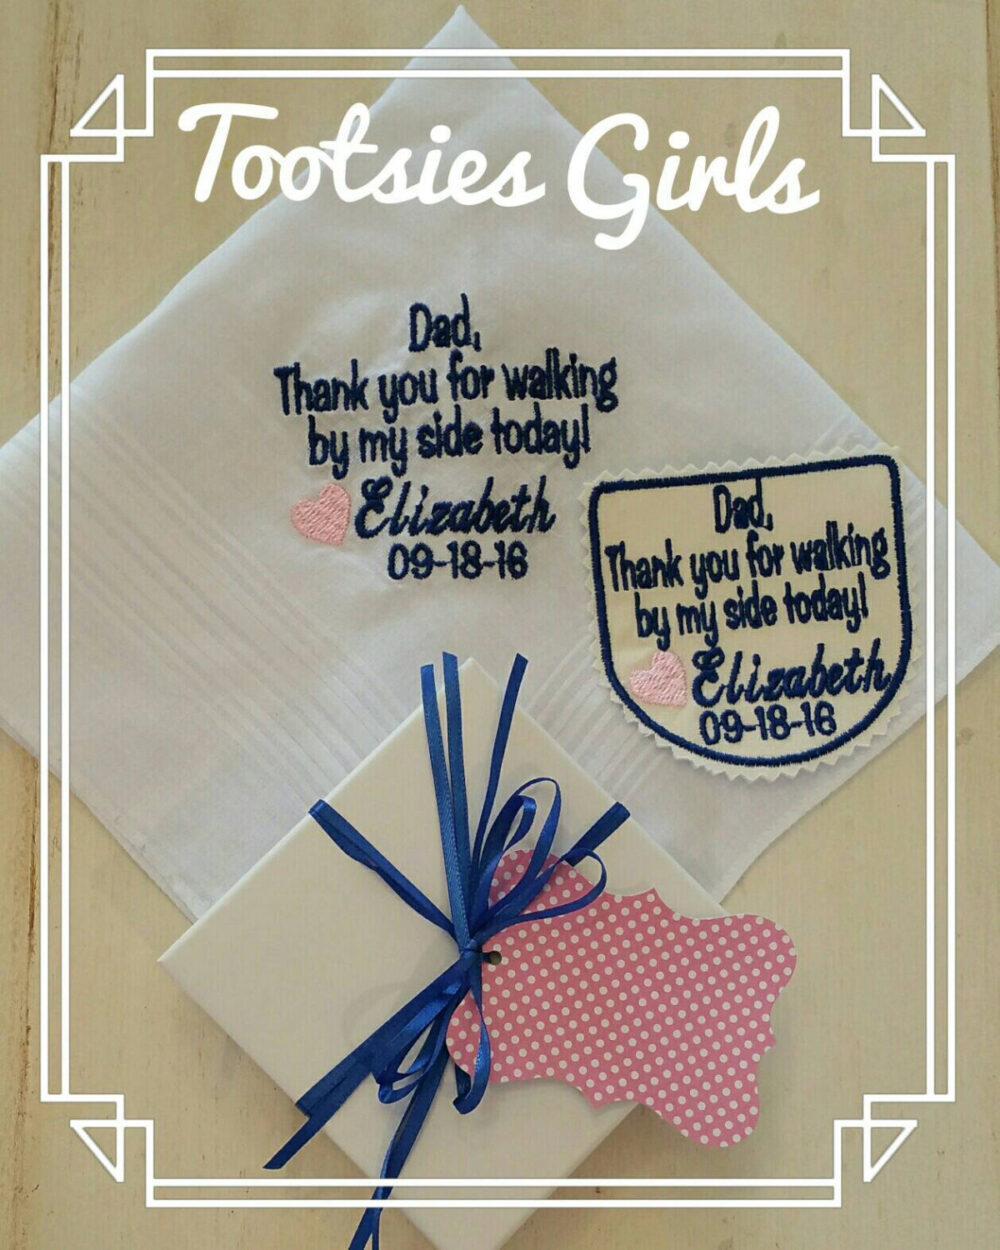 Wedding Tie Patch & Handkerchief Custom Embroidered With Name, Date, & Message. Unique Gift Set For Father Of The Bride, Groom, Grandpa